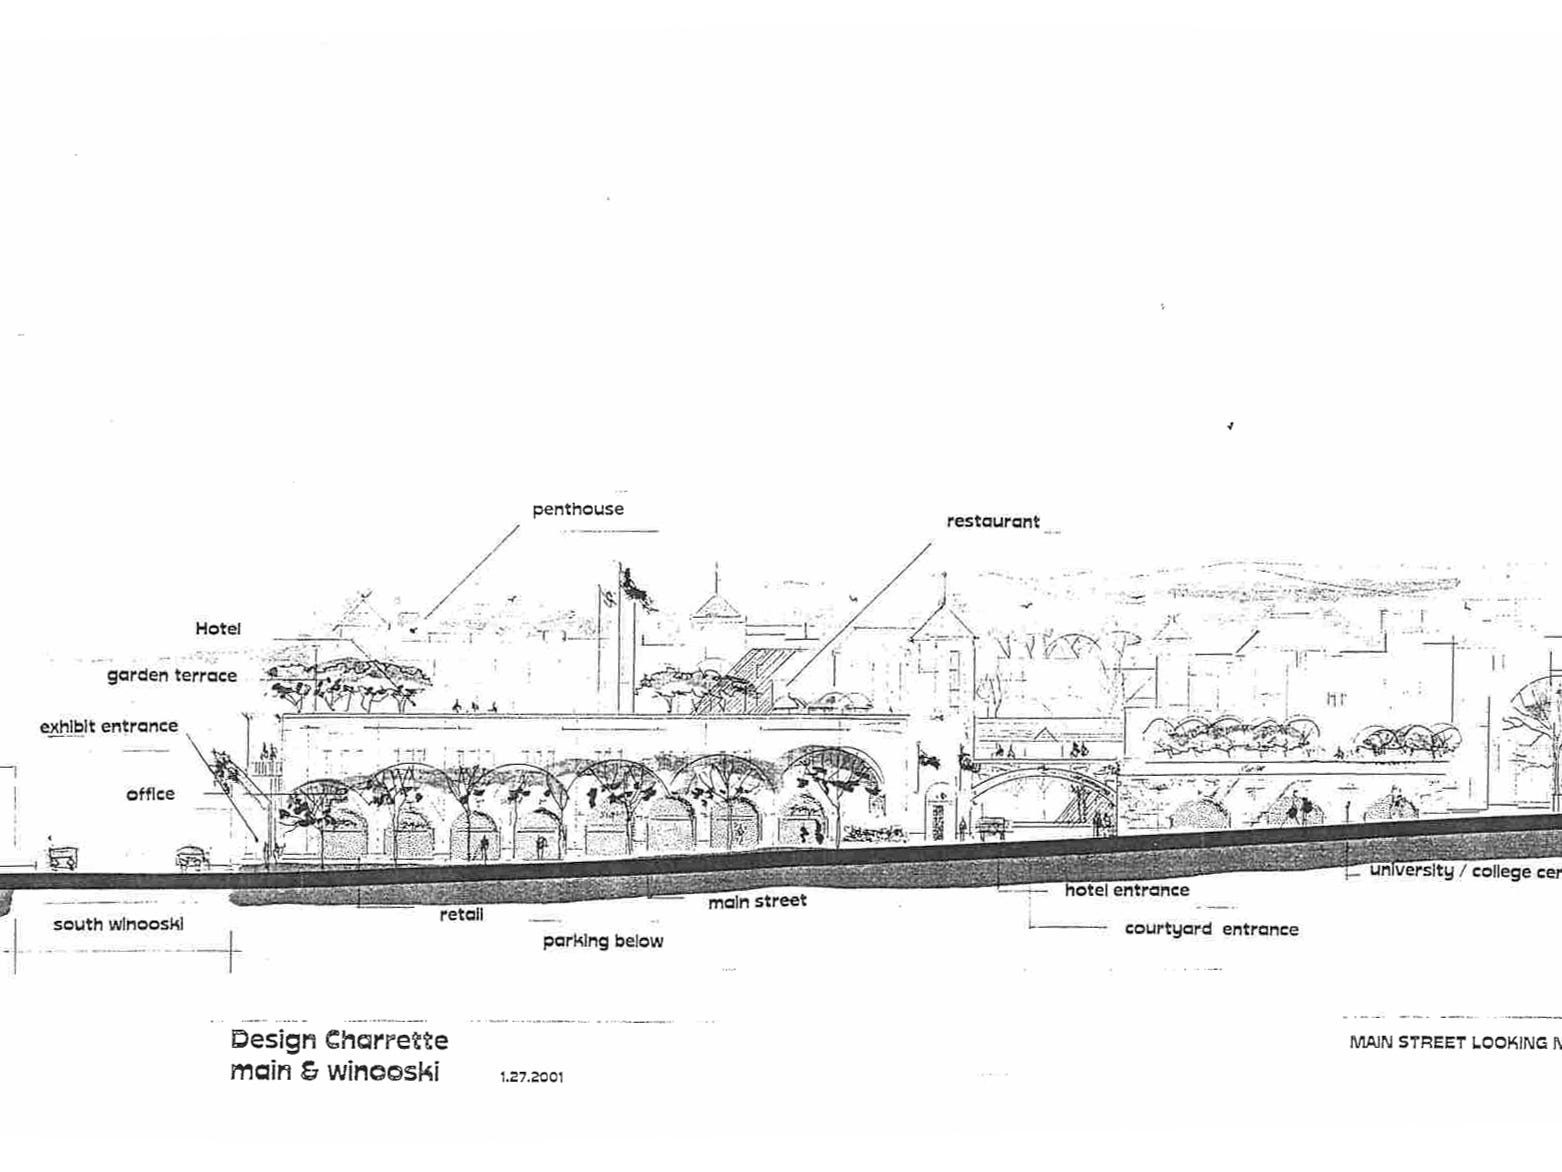 2001: A fanciful sketch of proposed changes to the area around Memorial Auditorium in Burlington shows a  hotel, a rooftop terrace and a restaurant.